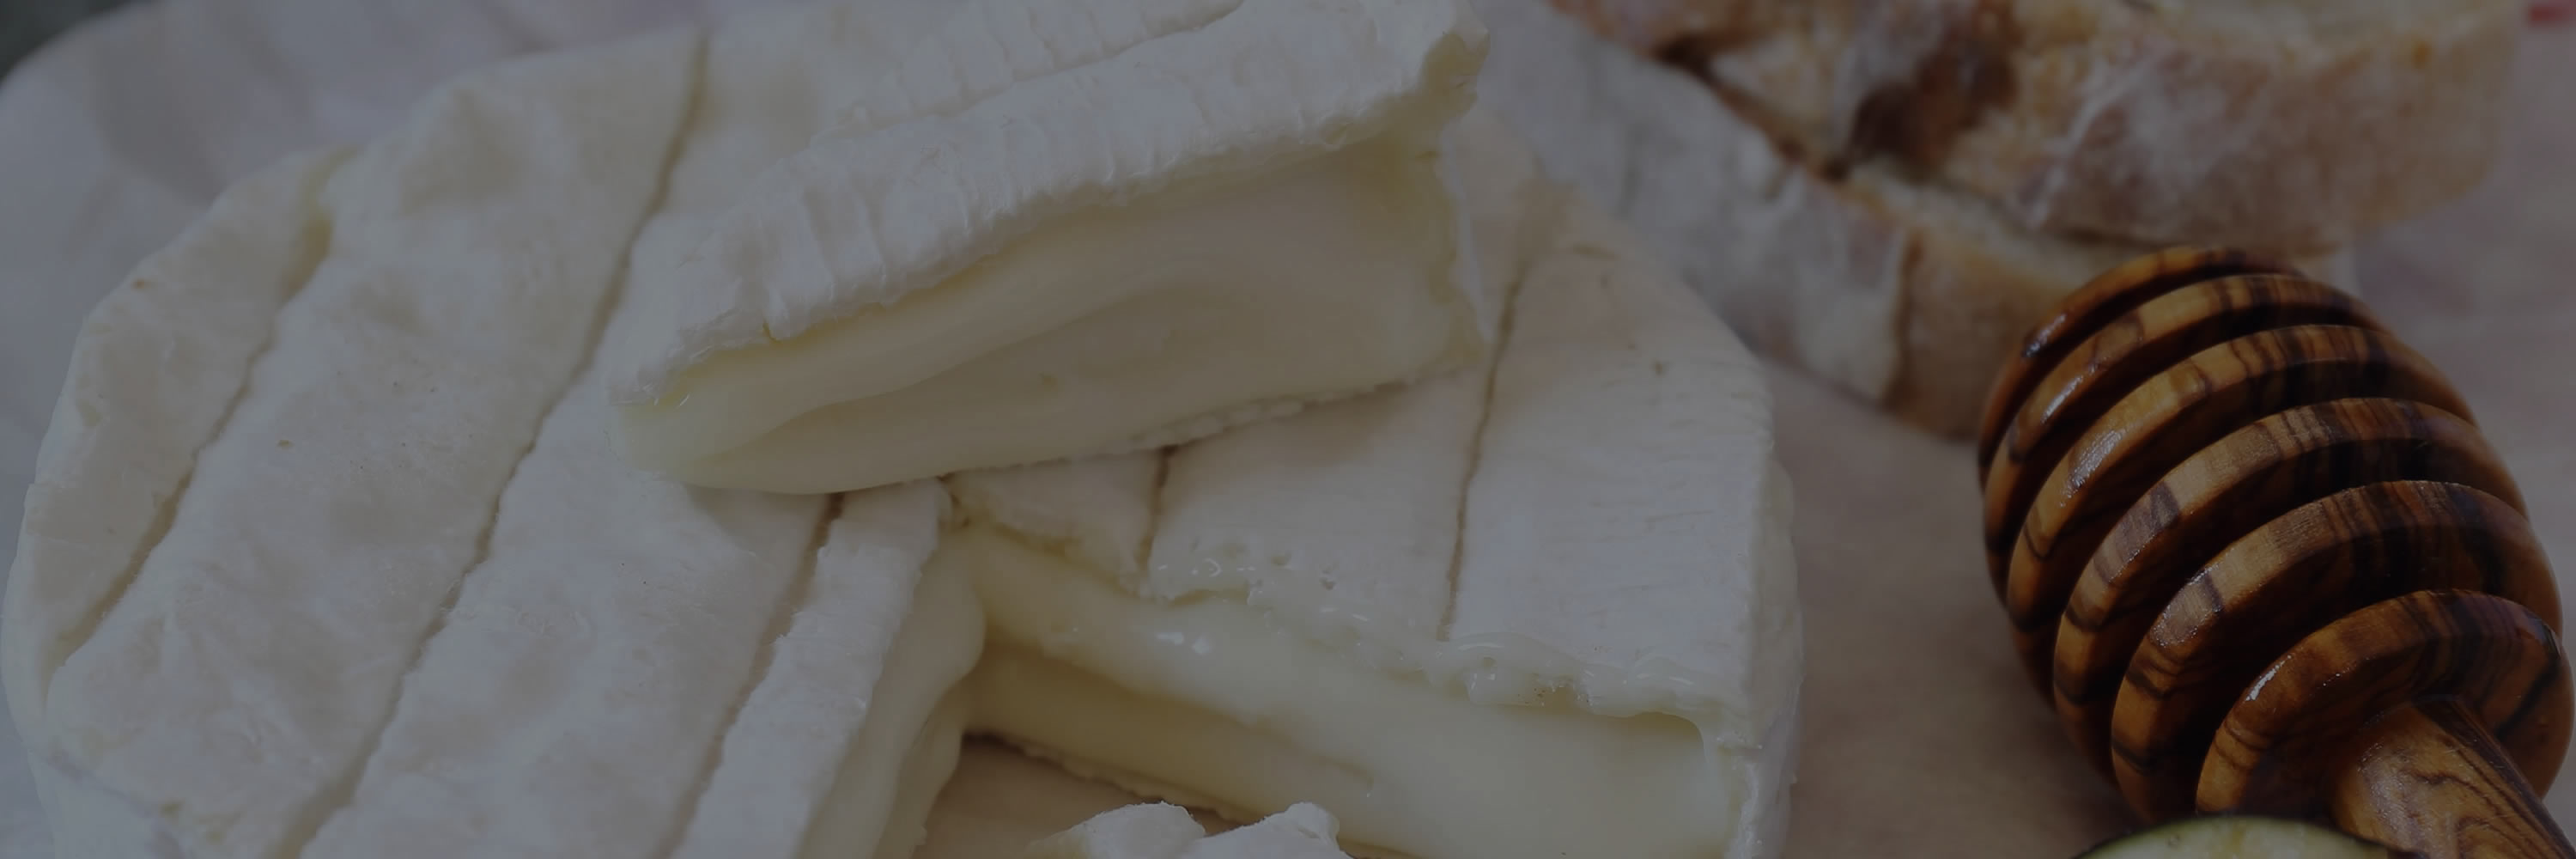 naem-webinar-2018-what-artisinal-goat-cheese-can-tell-us-about-food-safety-1800x600